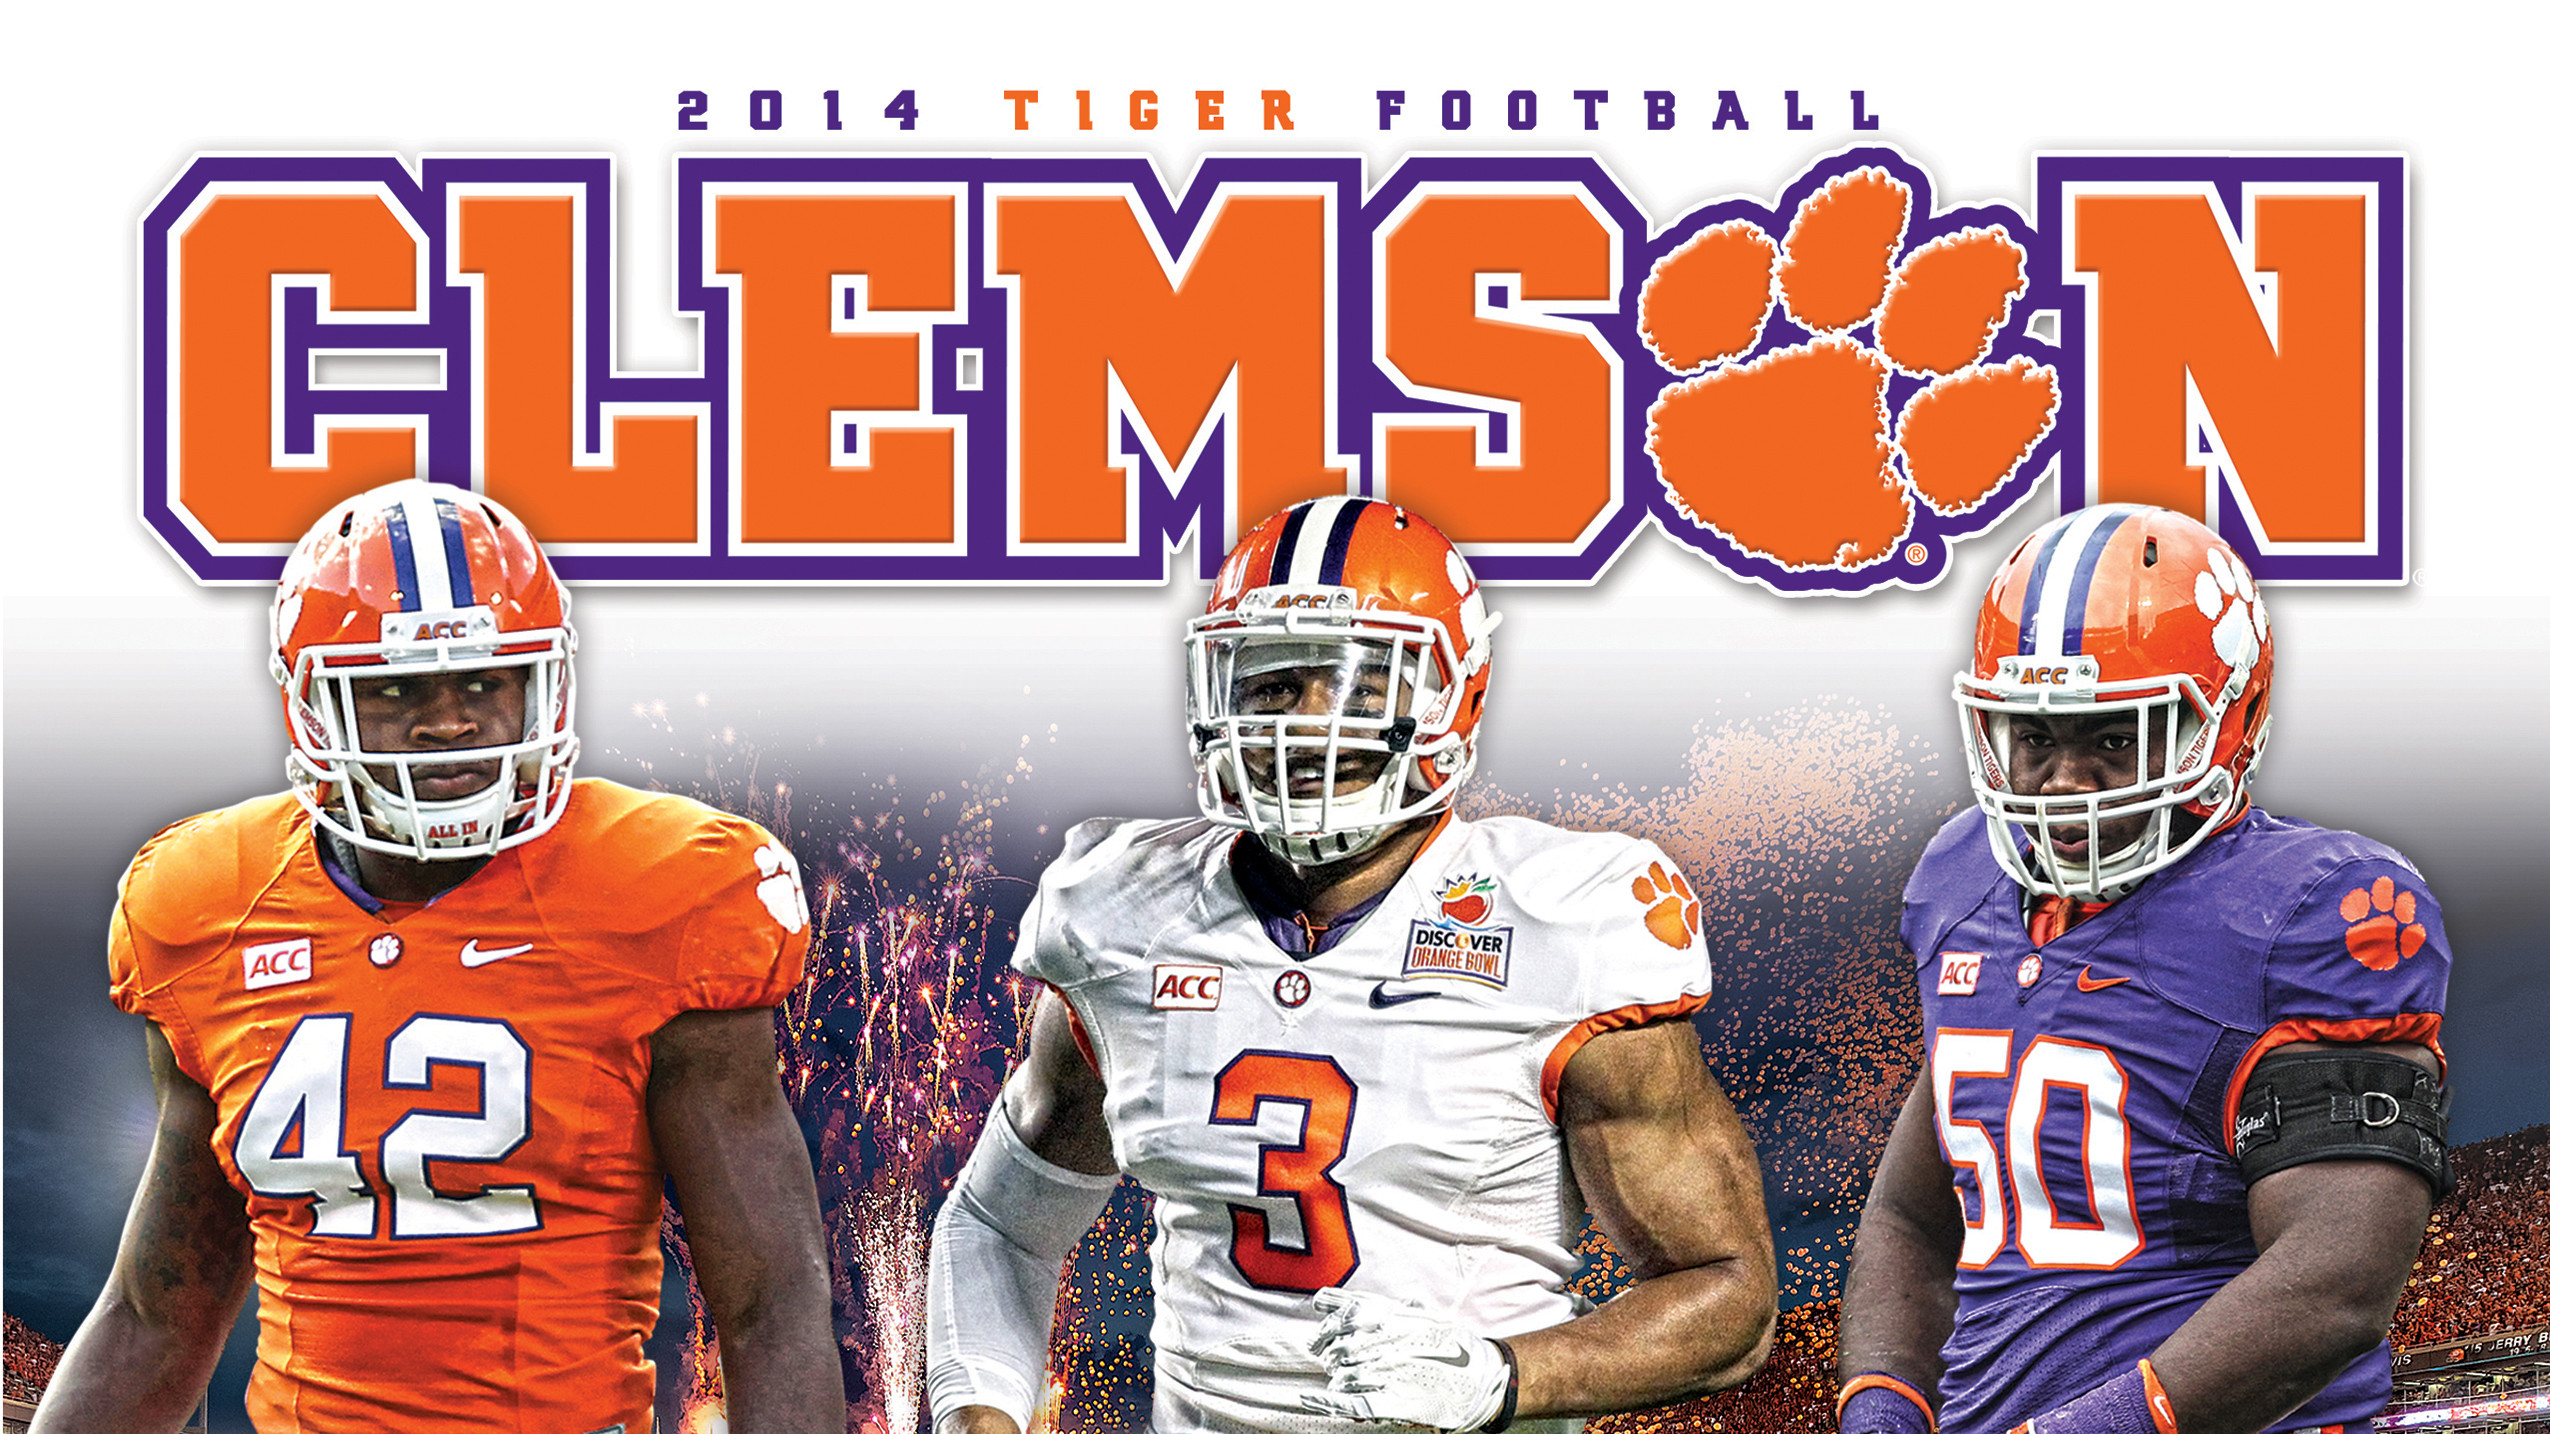 2014 Clemson Football Media Guide Now Available